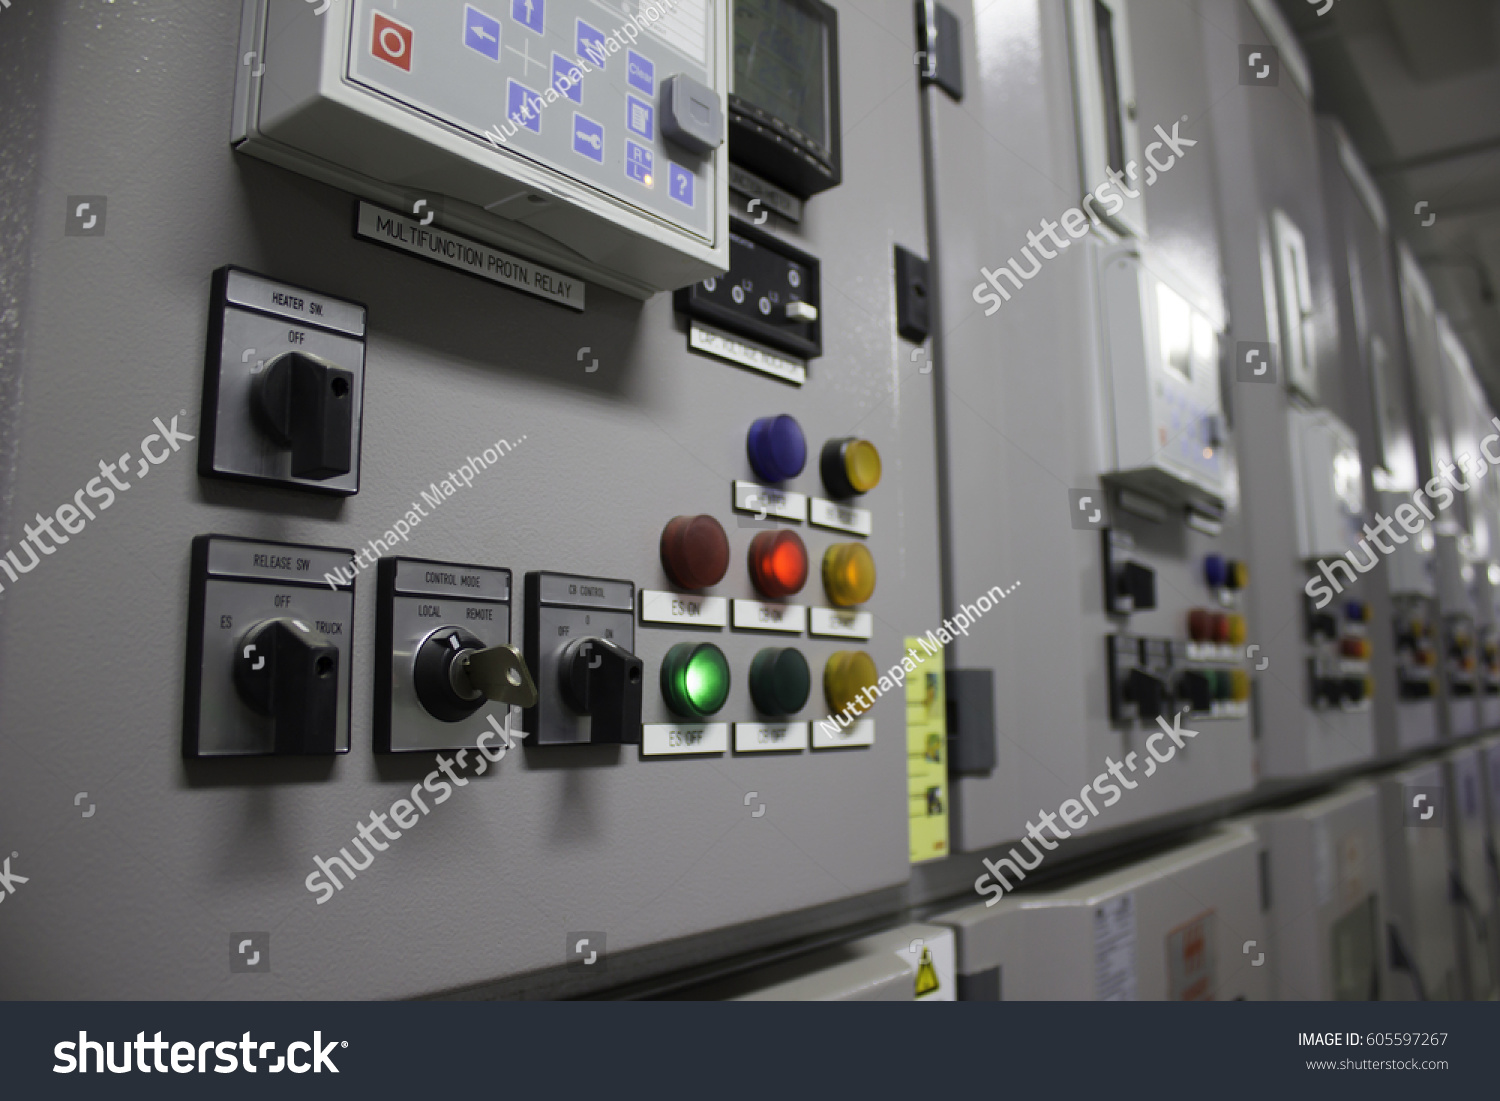 Selector Onoff Breaker Release Switch Earth Stock Photo Edit Now Relay For On Off And Rack In